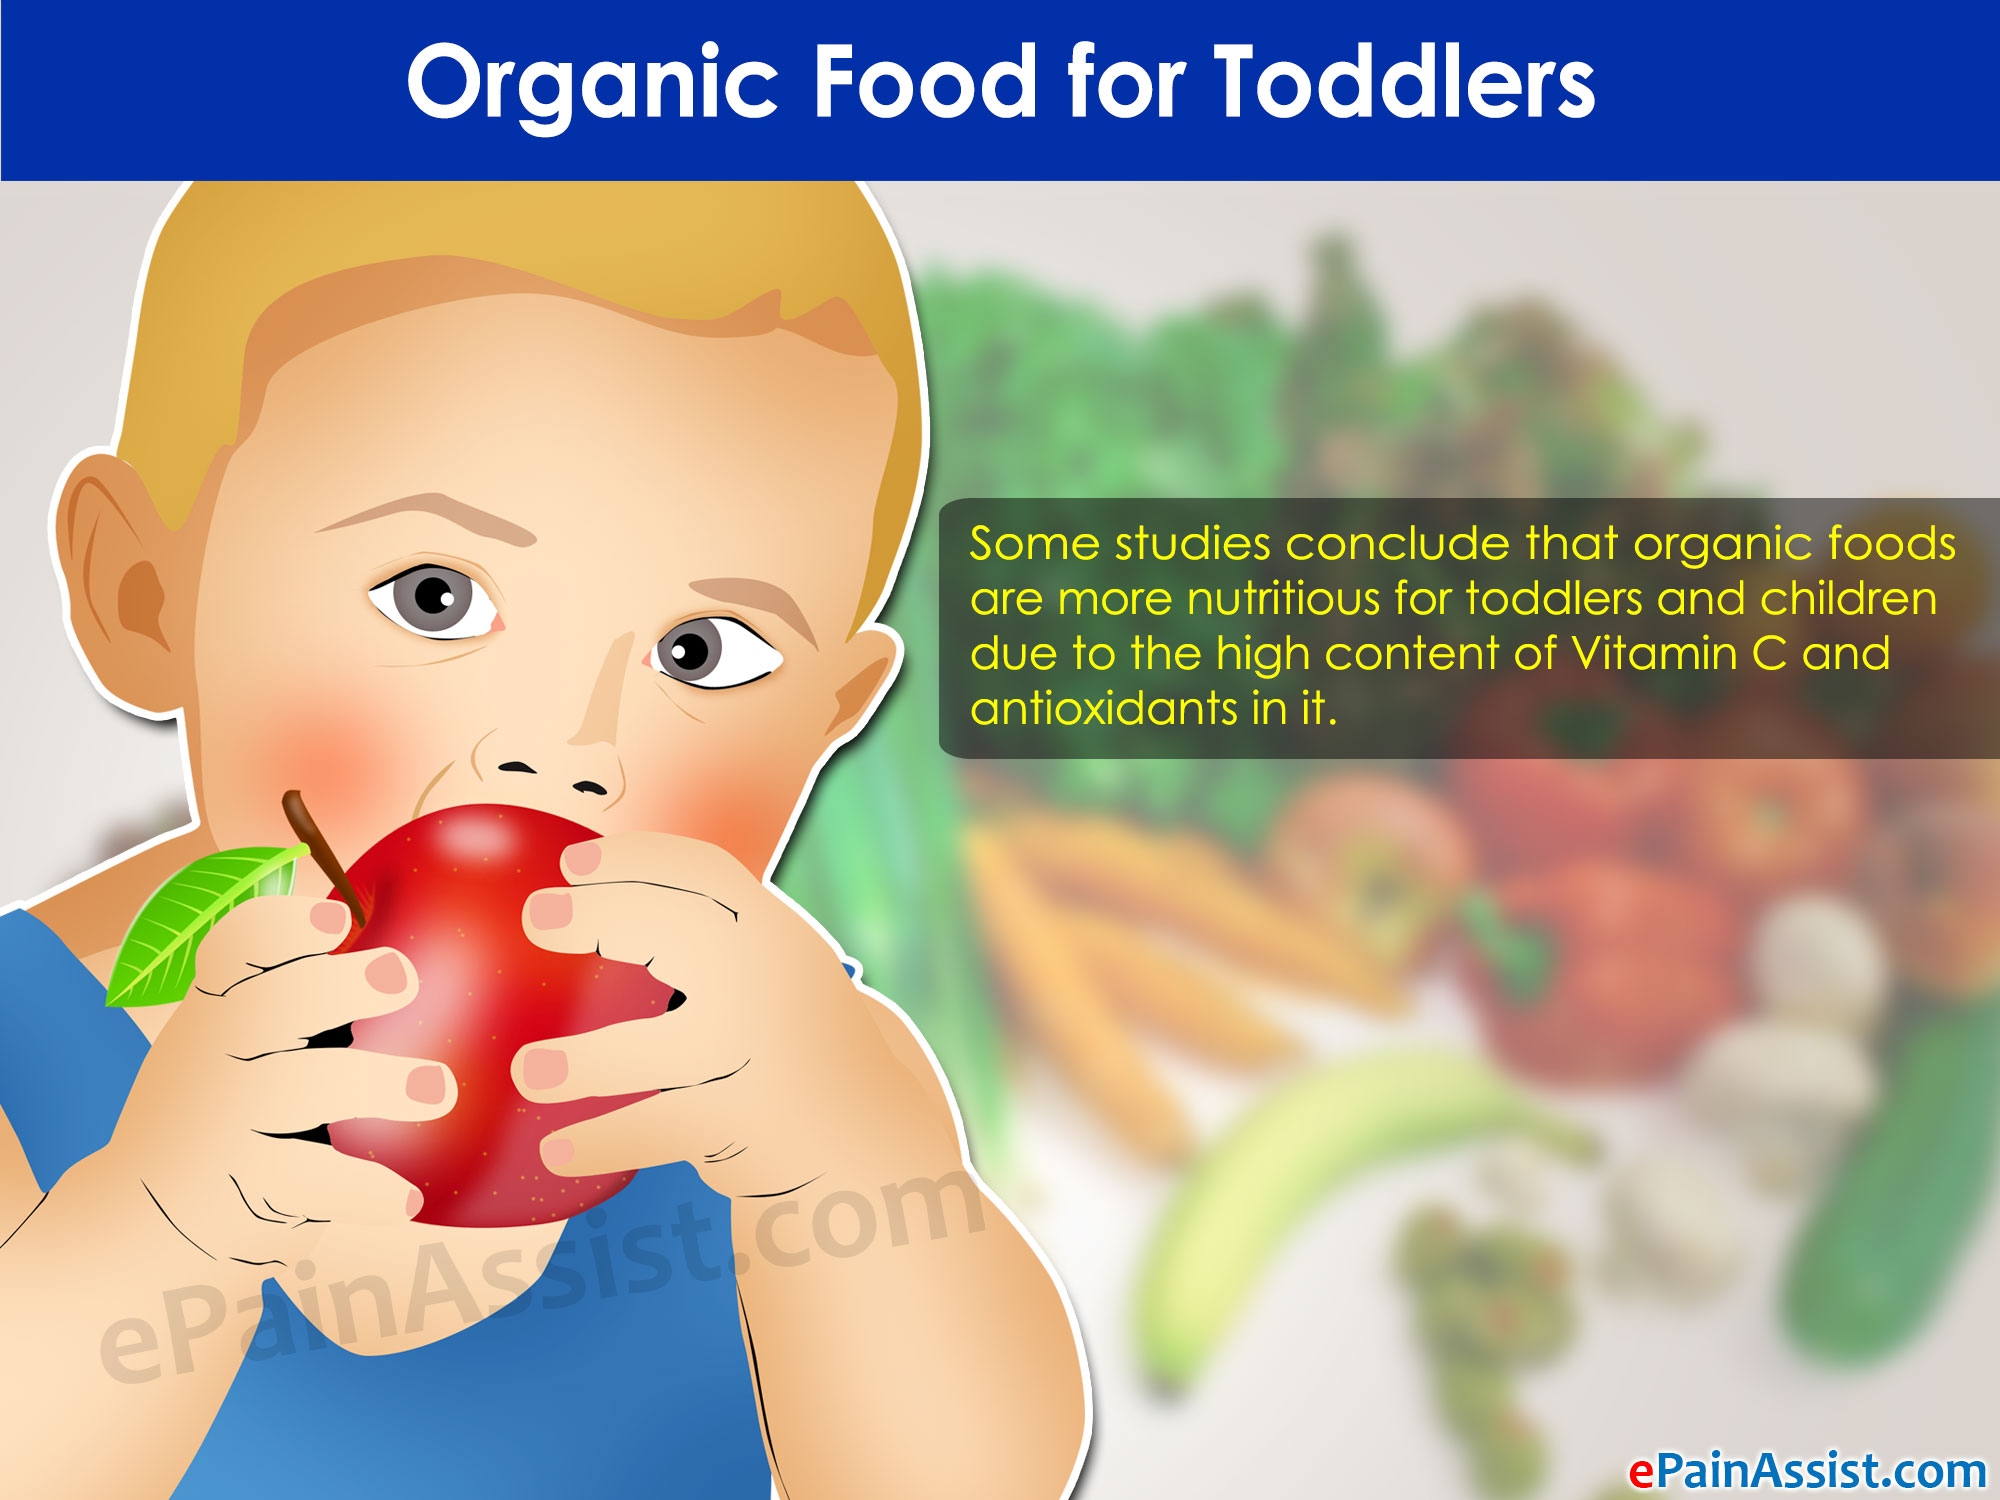 Organic Food for Toddlers